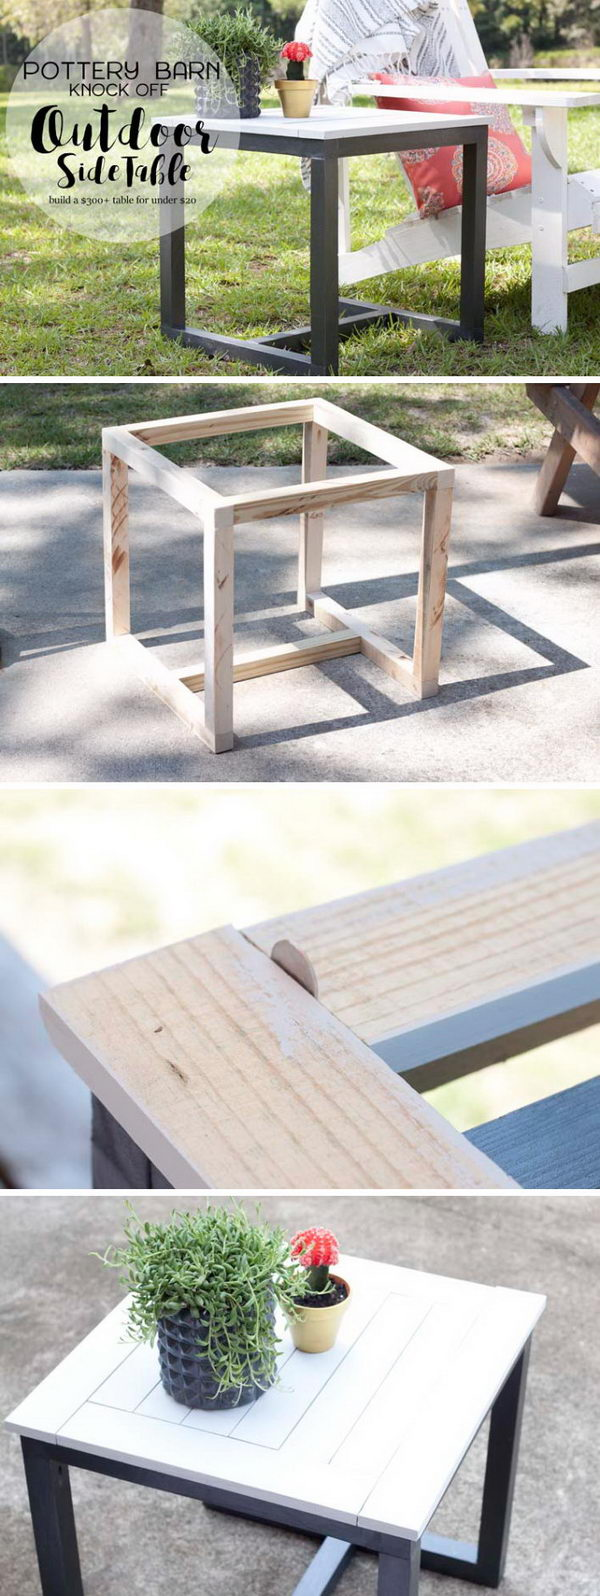 awesome diy side table ideas for outdoors and indoors hative tutorials pottery barn flower accent knockoff outdoor ashley furniture rustic coffee round christmas tablecloths